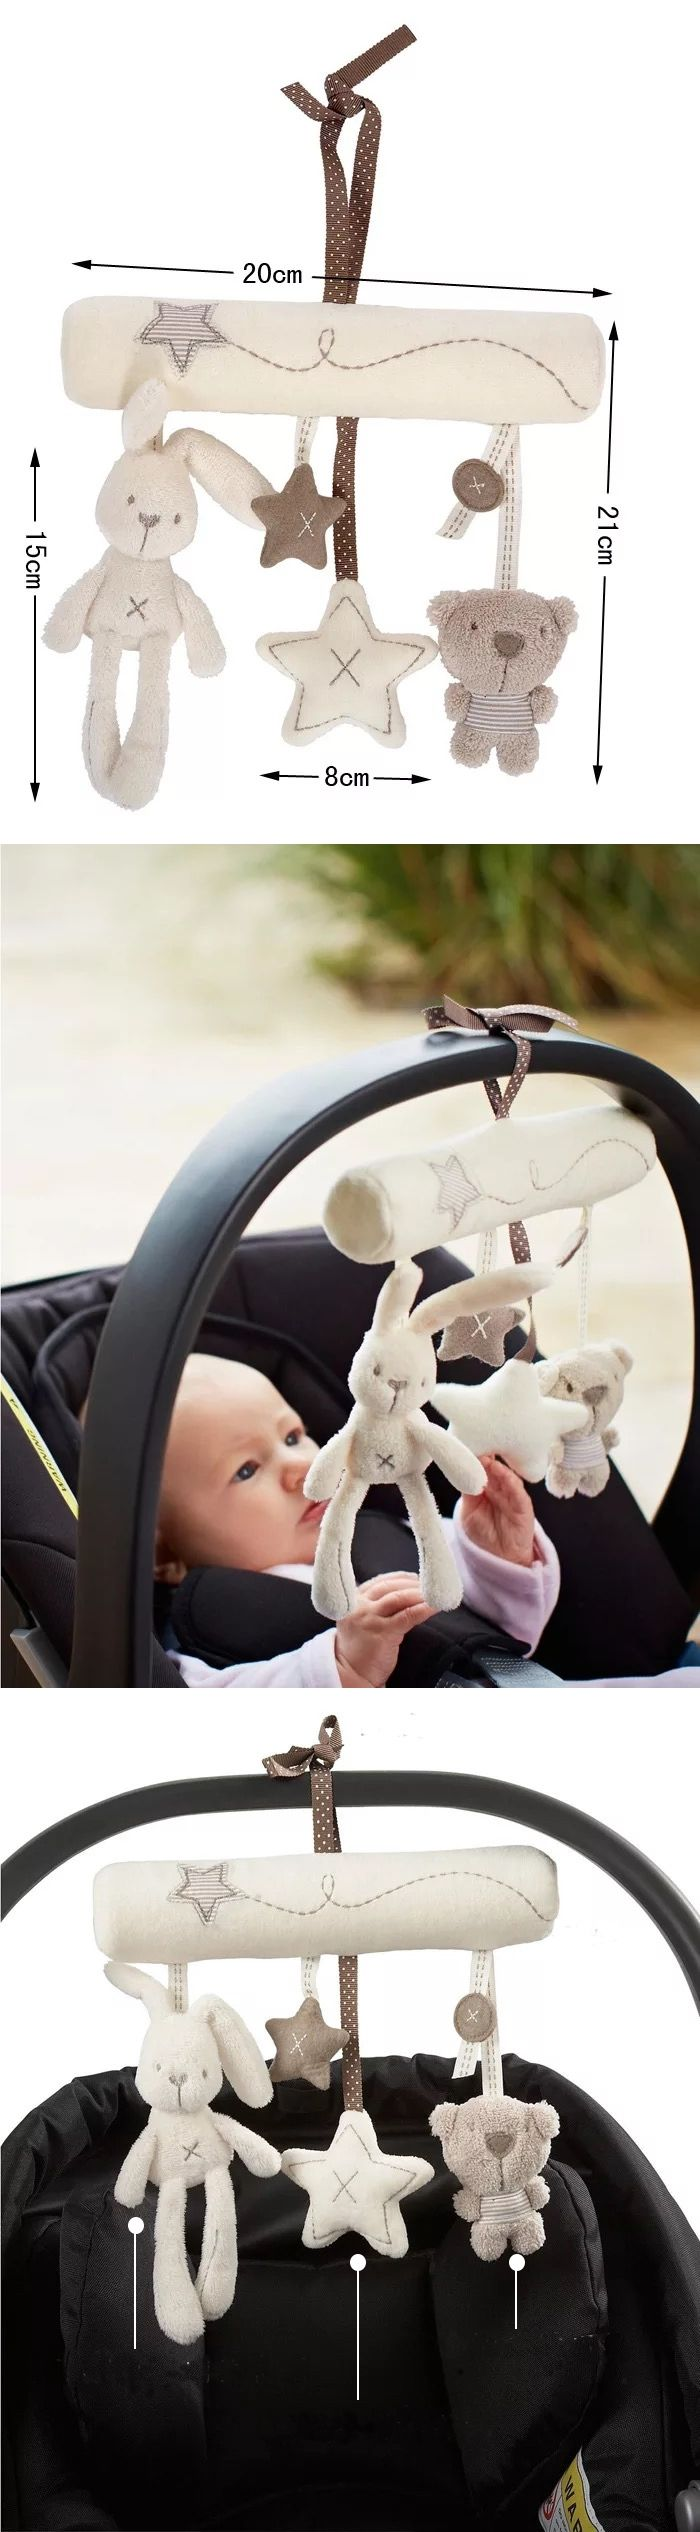 Baby Stroller Accessories Crib Musical Mobile Cot Bell Music Box with Holder Arm Baby Bed Hanging Rattle Toys Newborn Gift